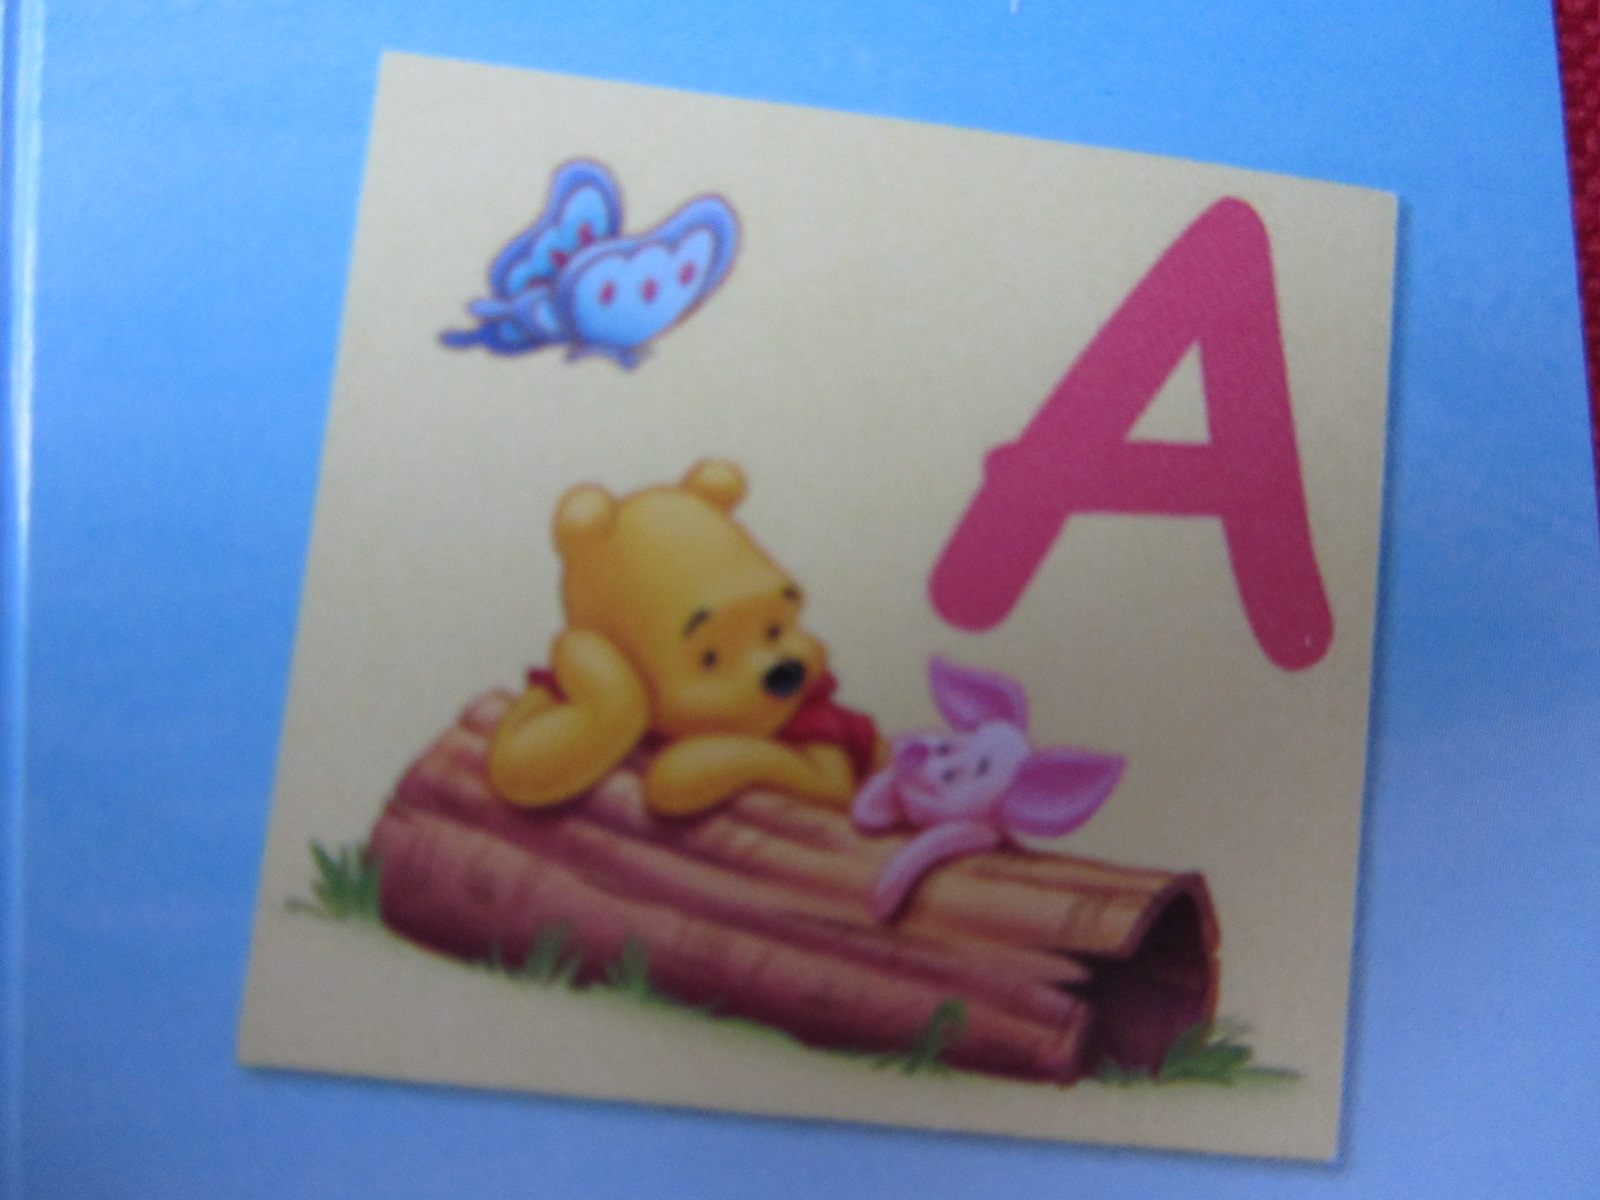 Modern 28 winnie the pooh nursery alphabet giant stickers for Large wall letters for nursery